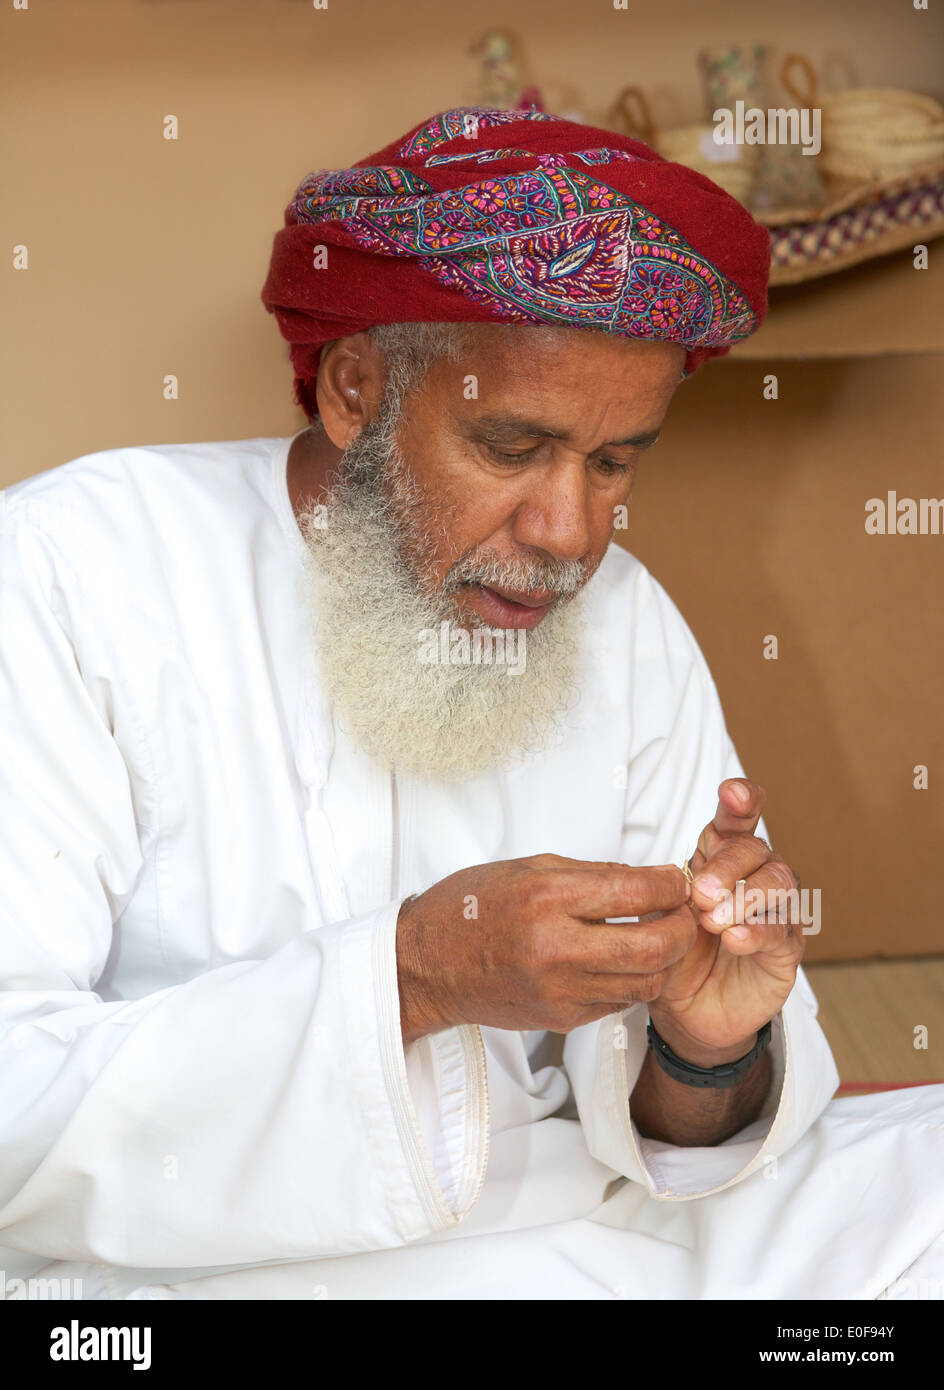 MUSCAT, OMAN - FEBRUARY 1, 2008: A bearded Omani craftsman, wearing a traditional muzzar (headcloth), at work in Muscat, Oman. - Stock Image